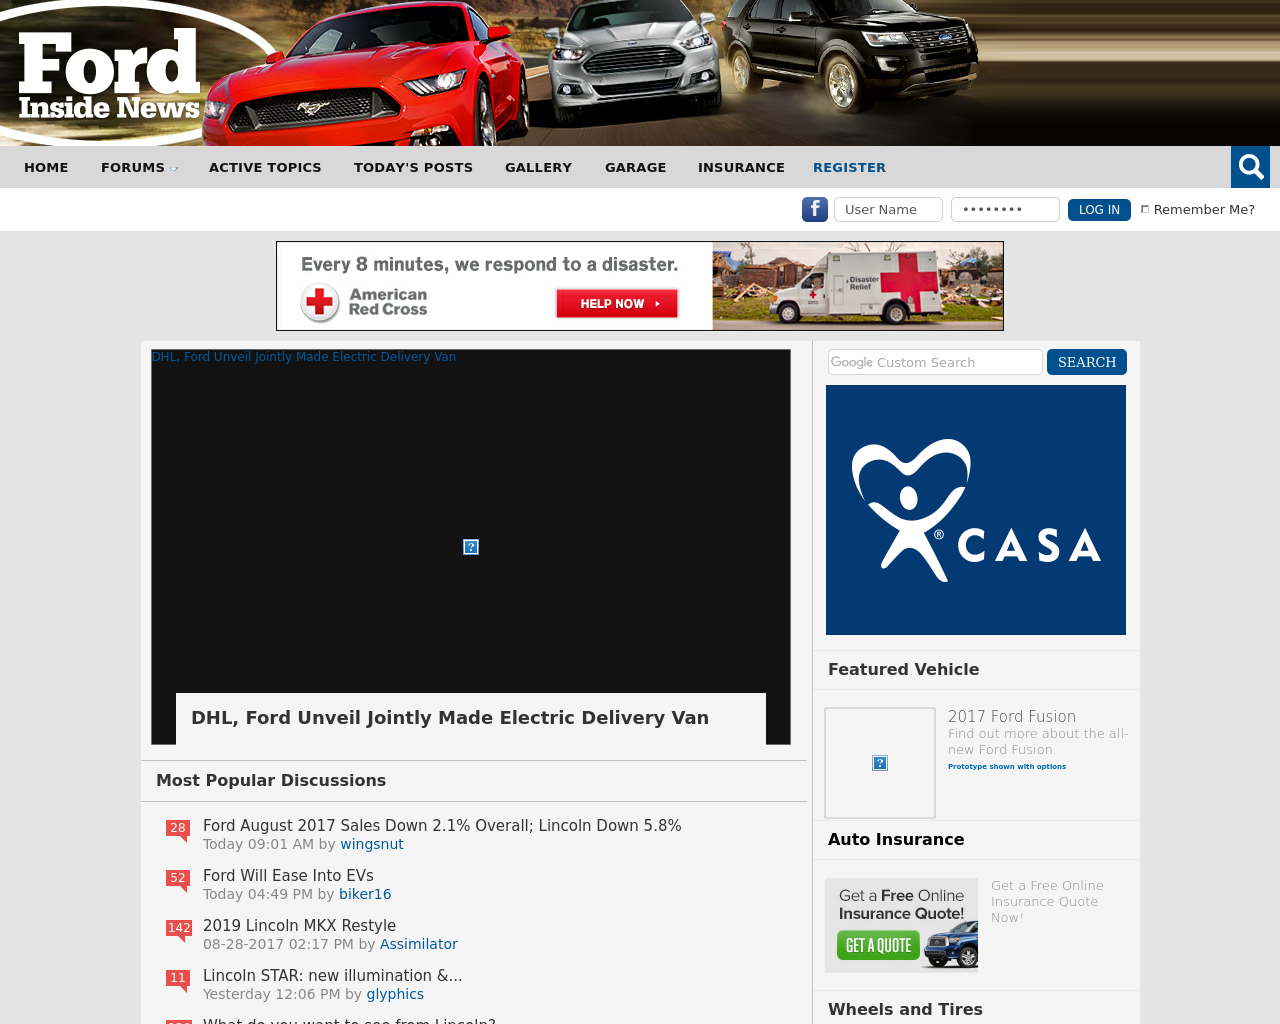 Ford-Inside-News-Community-Advertising-Reviews-Pricing